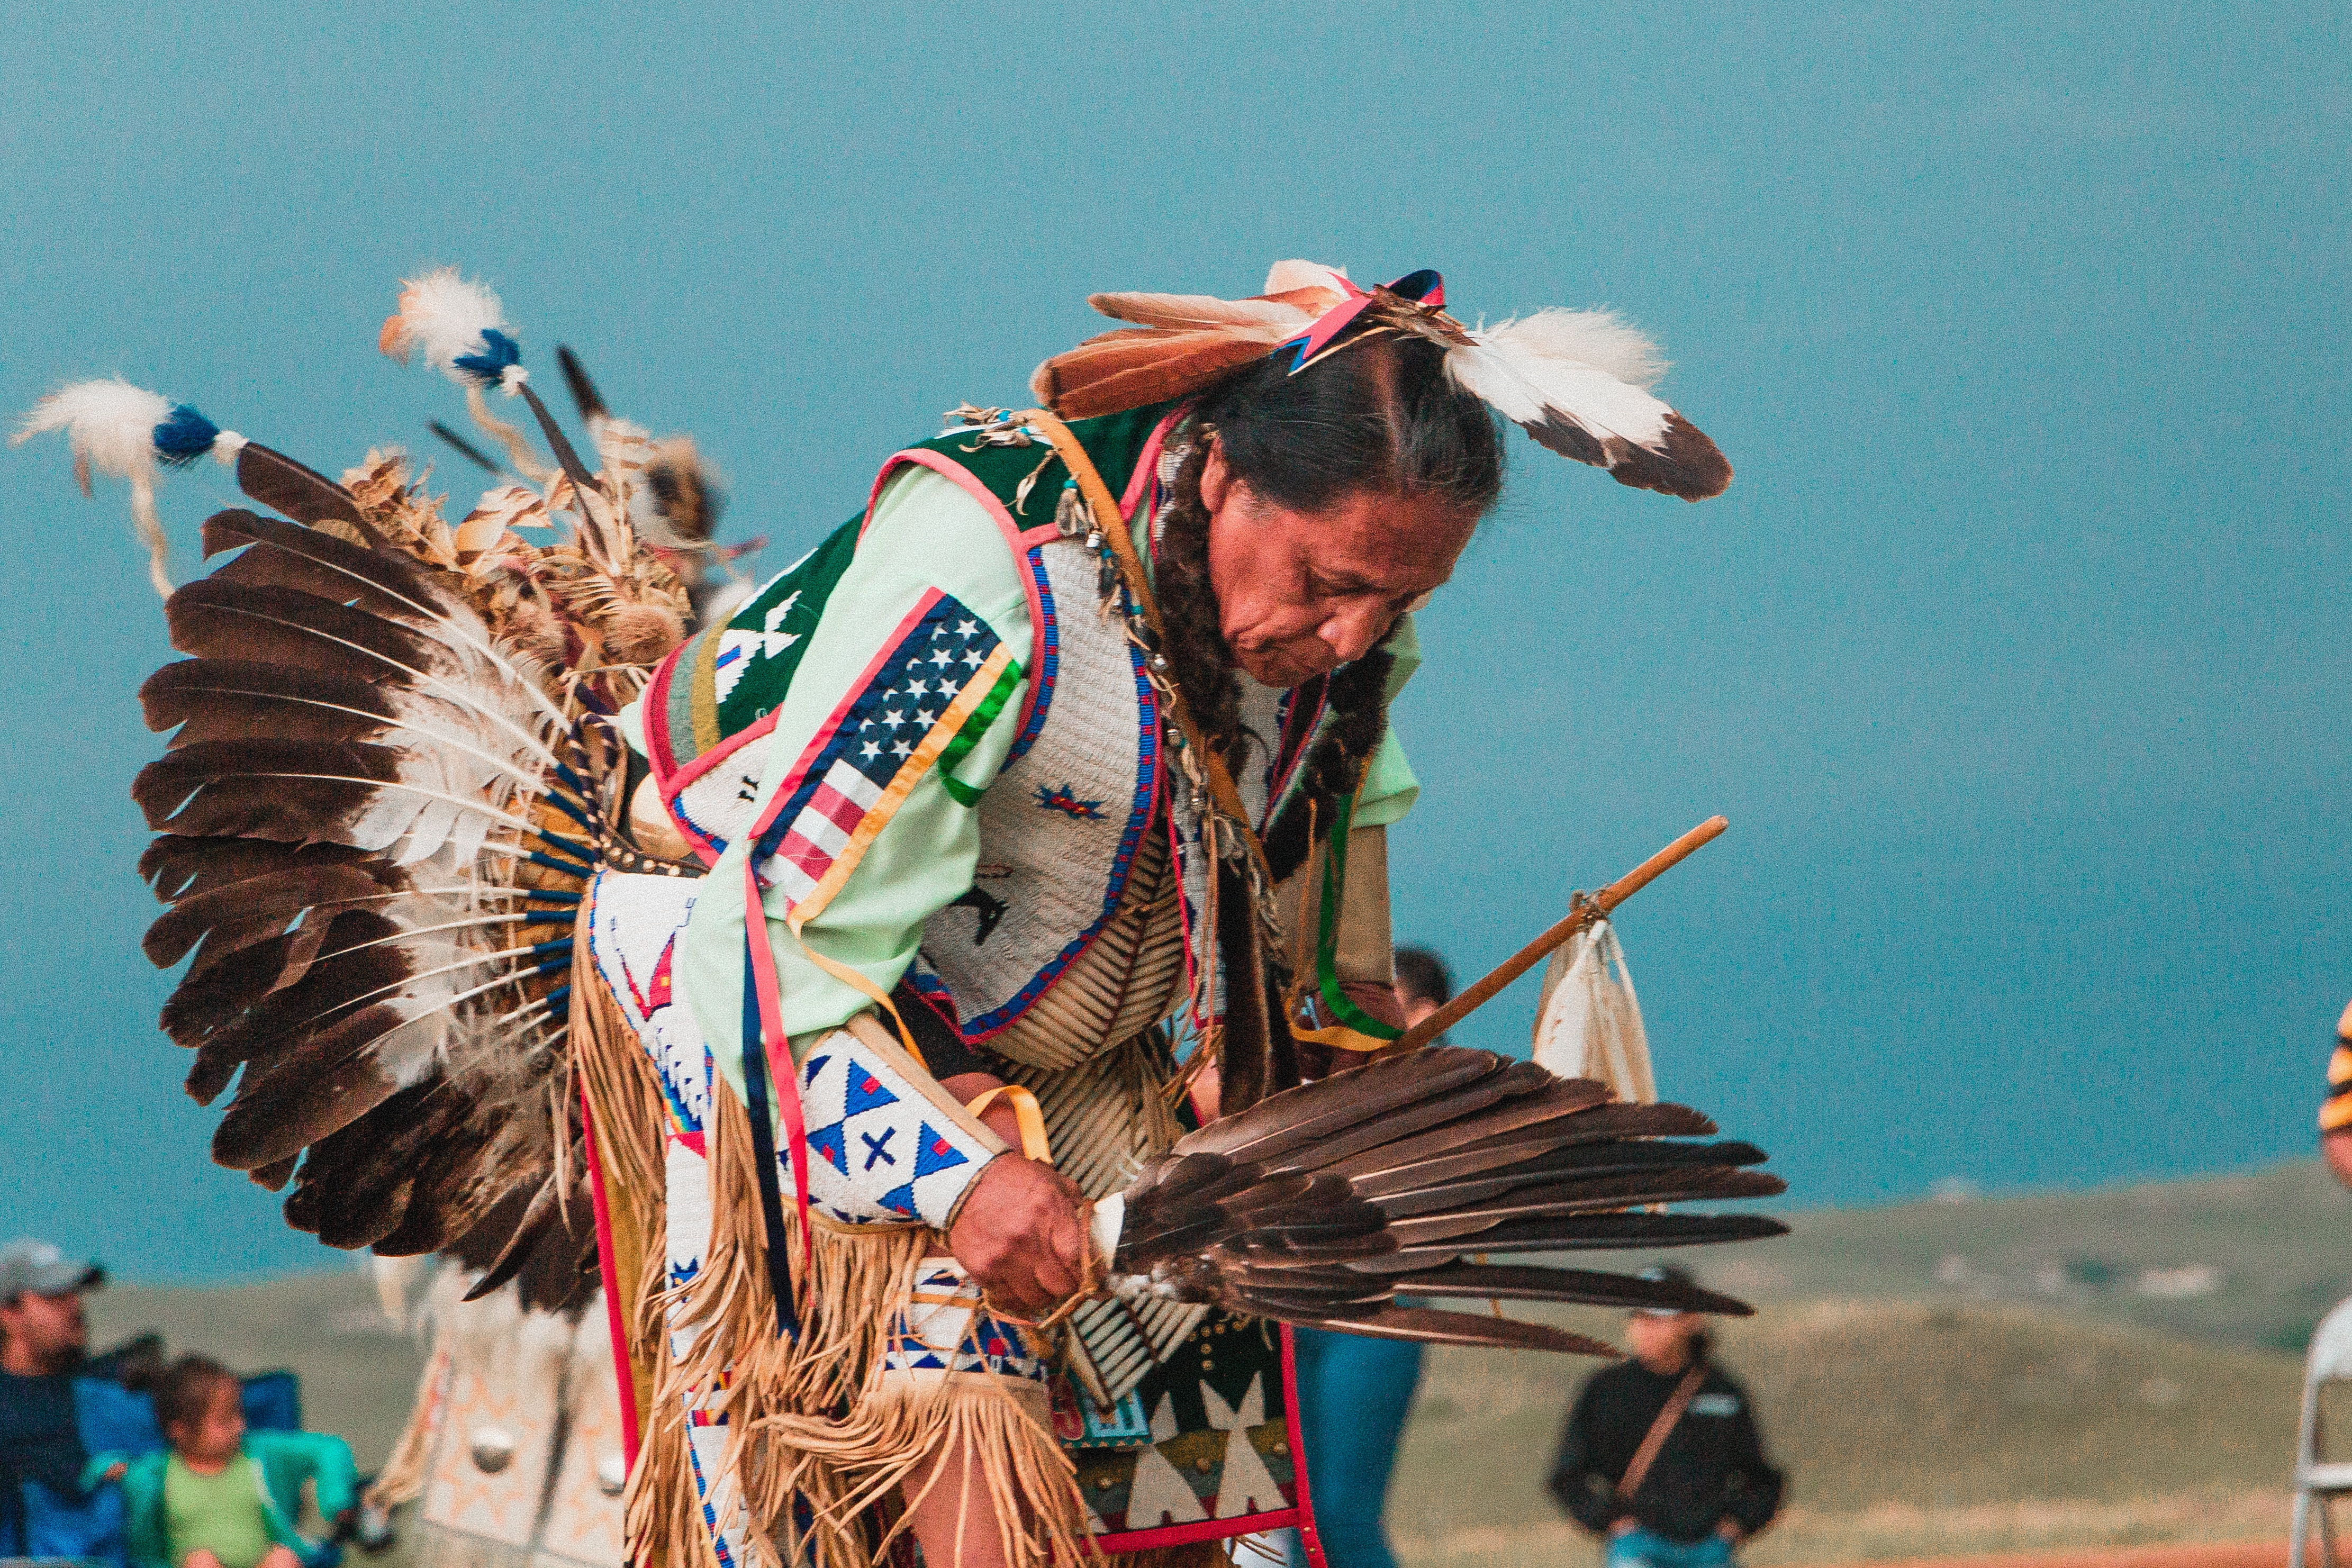 An indigenous North American of the Lakota tribe at a Pow Wow festival in South Dakota.